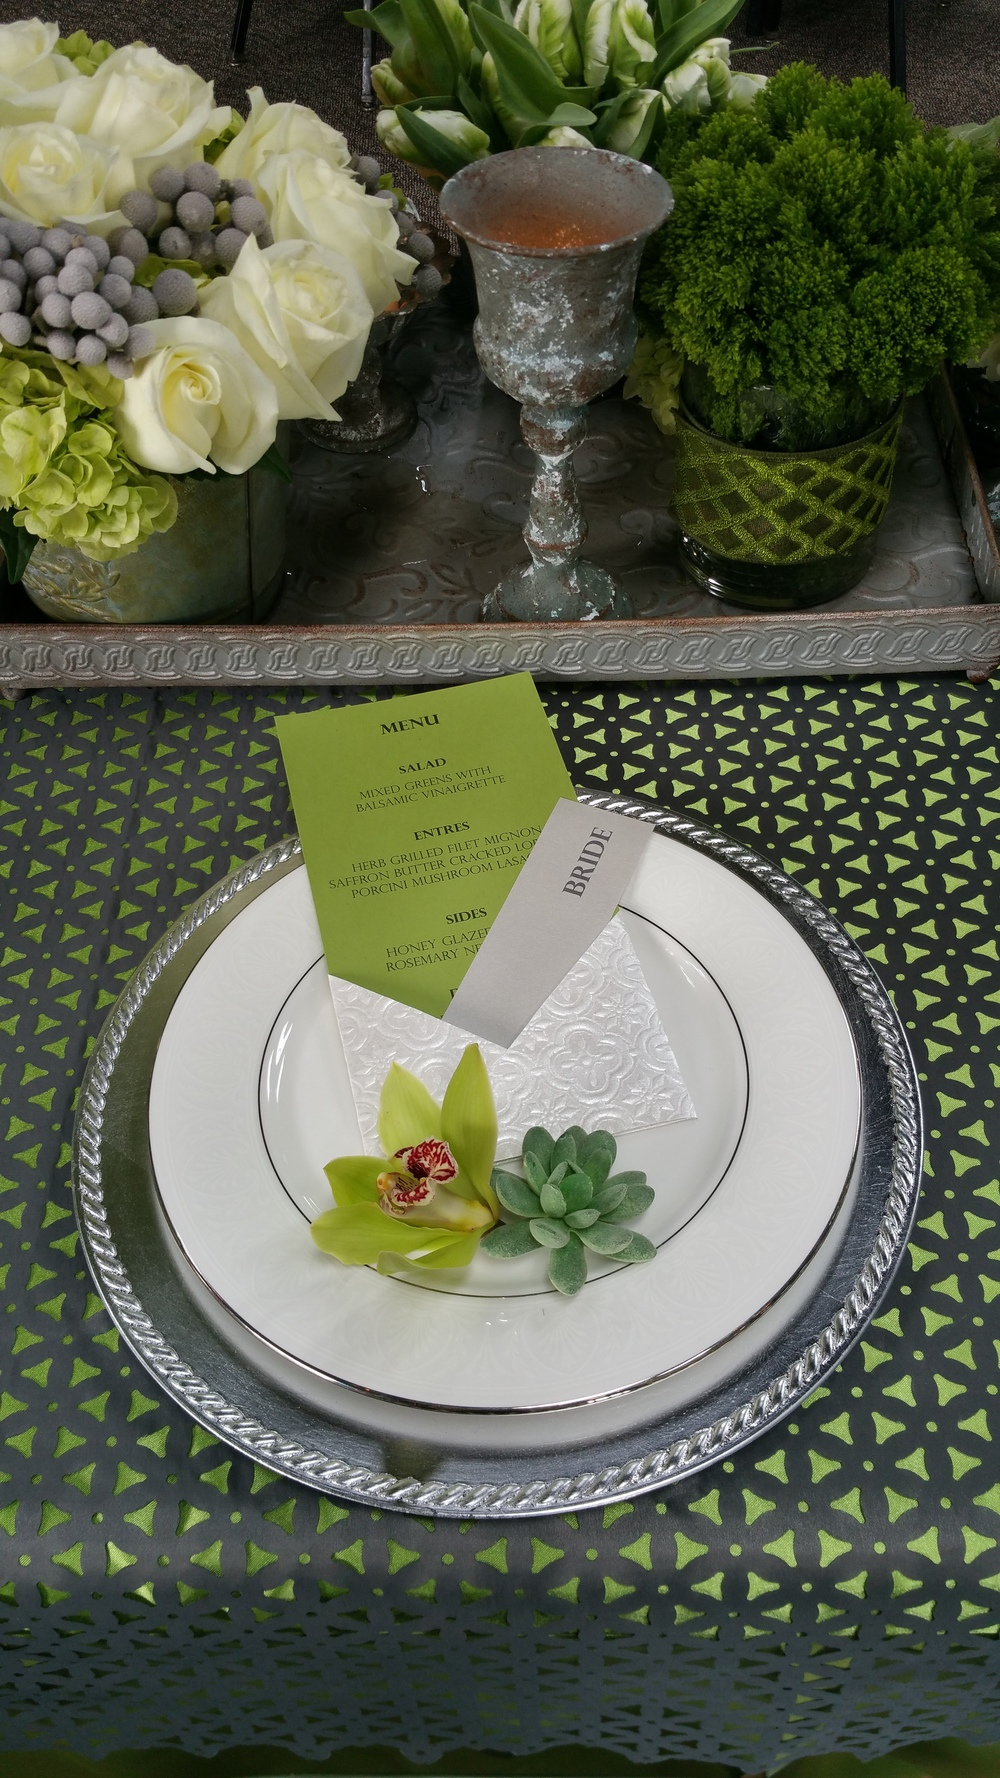 Individual menus were added as a detail at each setting. Each with a unique ornamental paper pocket also holding the place cards.